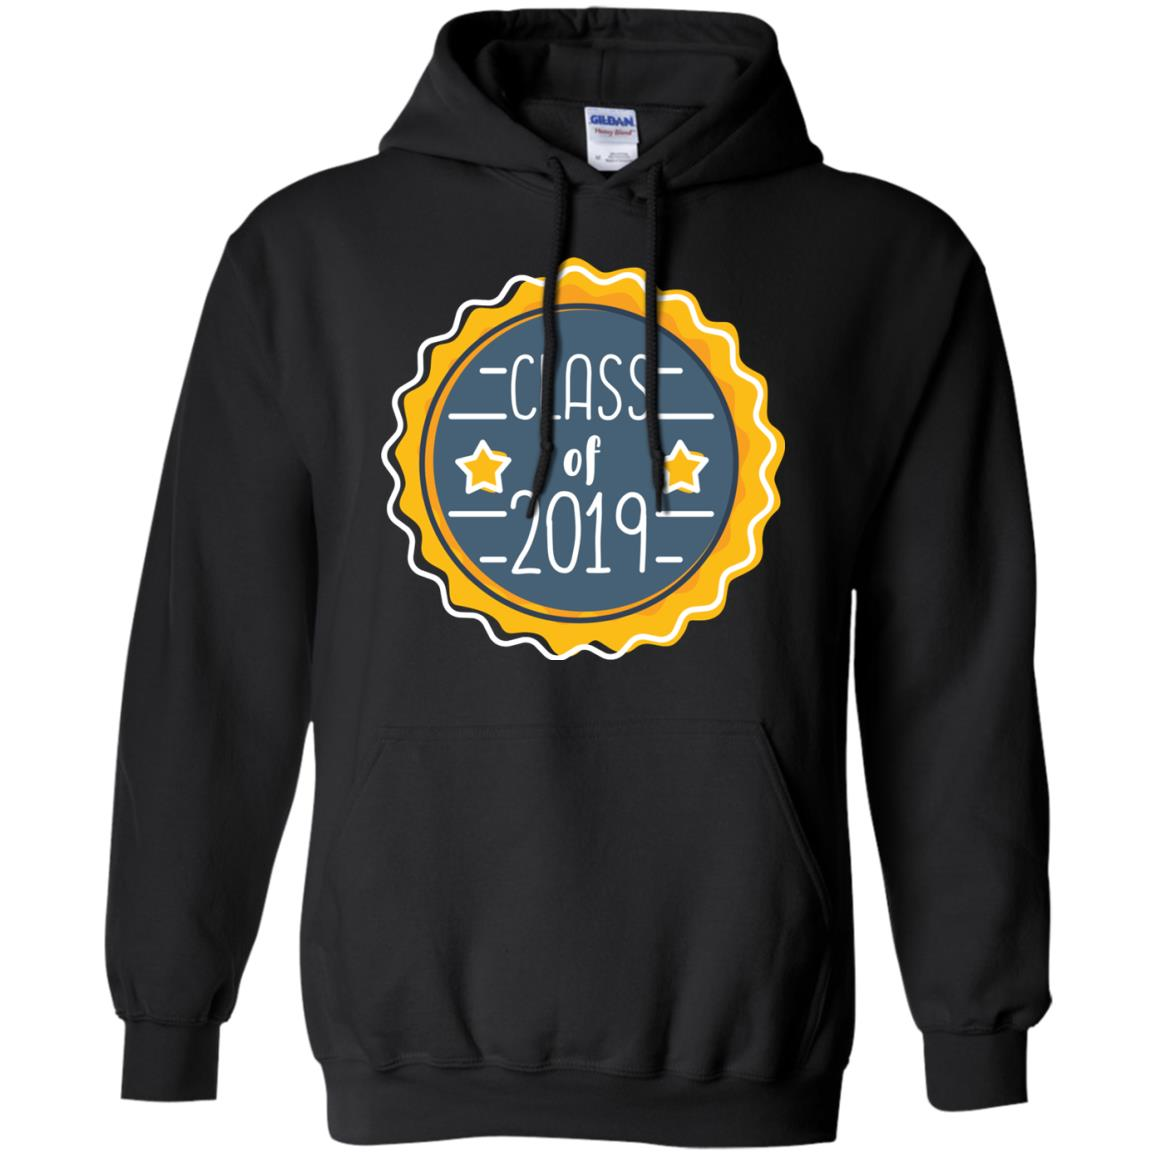 Class of 2019 Celebrating Graduation Day T shirt Grad Gifts